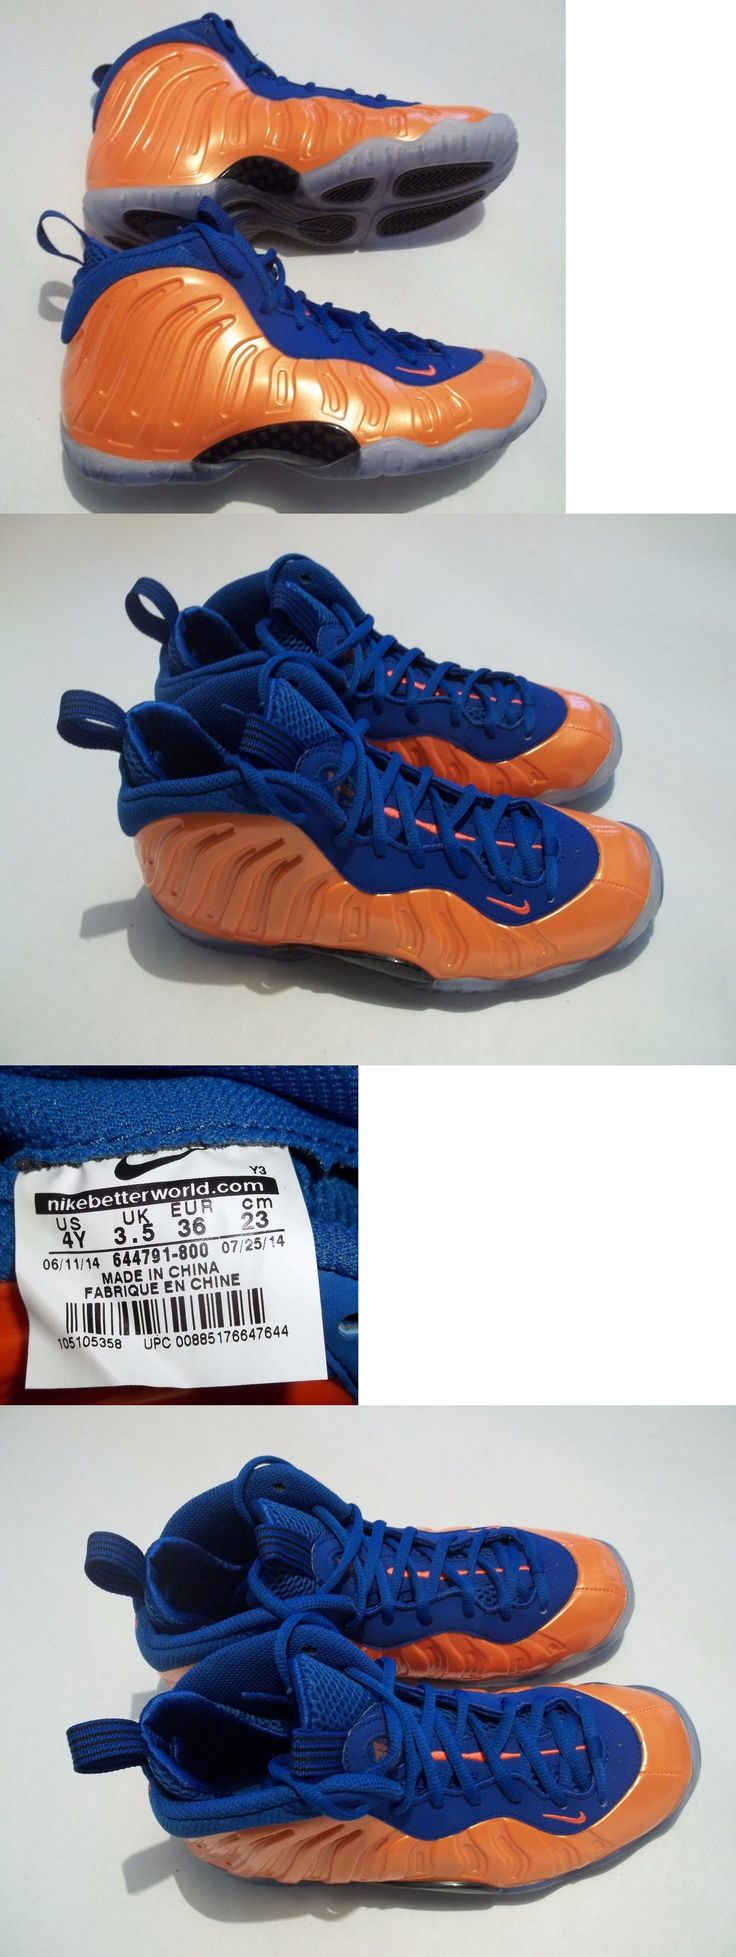 0dec74d44bb4 Best 25+ Kids foamposites ideas on Pinterest